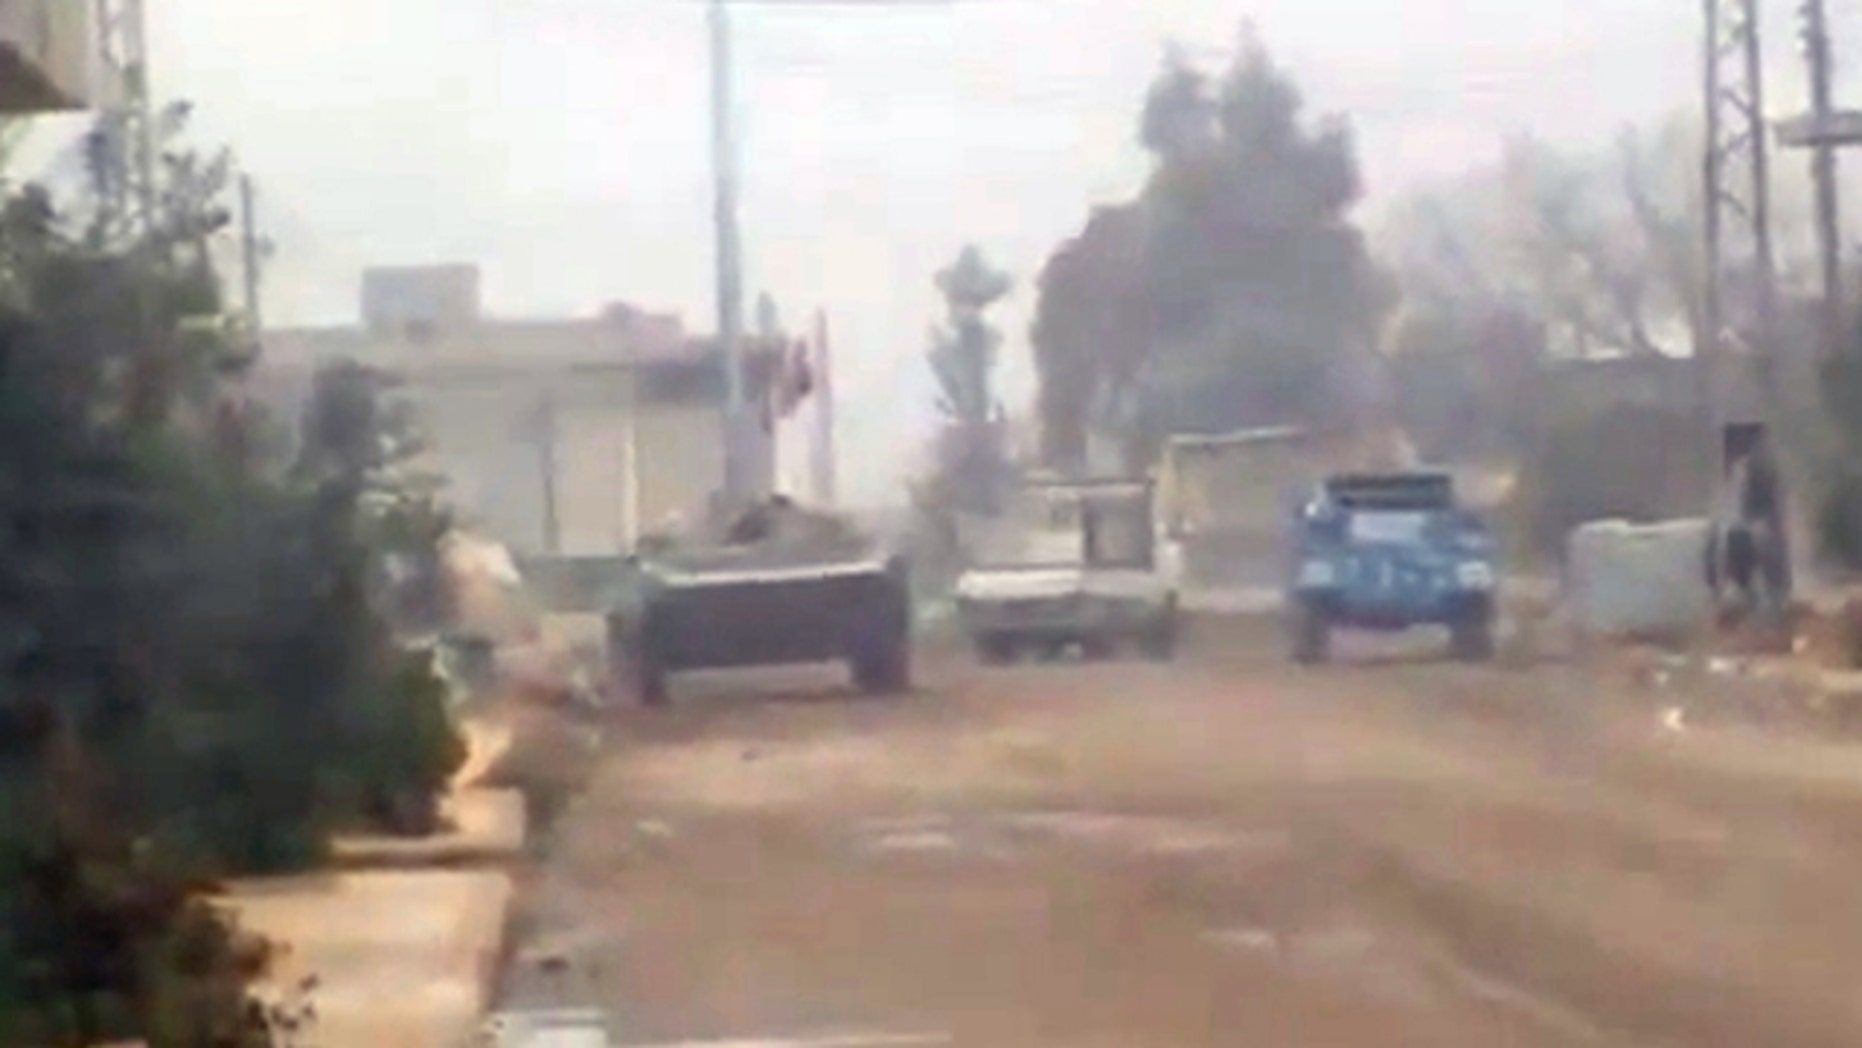 Dec. 21, 2011: In this image from amateur video made available by the Ugarit News group purports to show military vehicles in Homs, Syria.